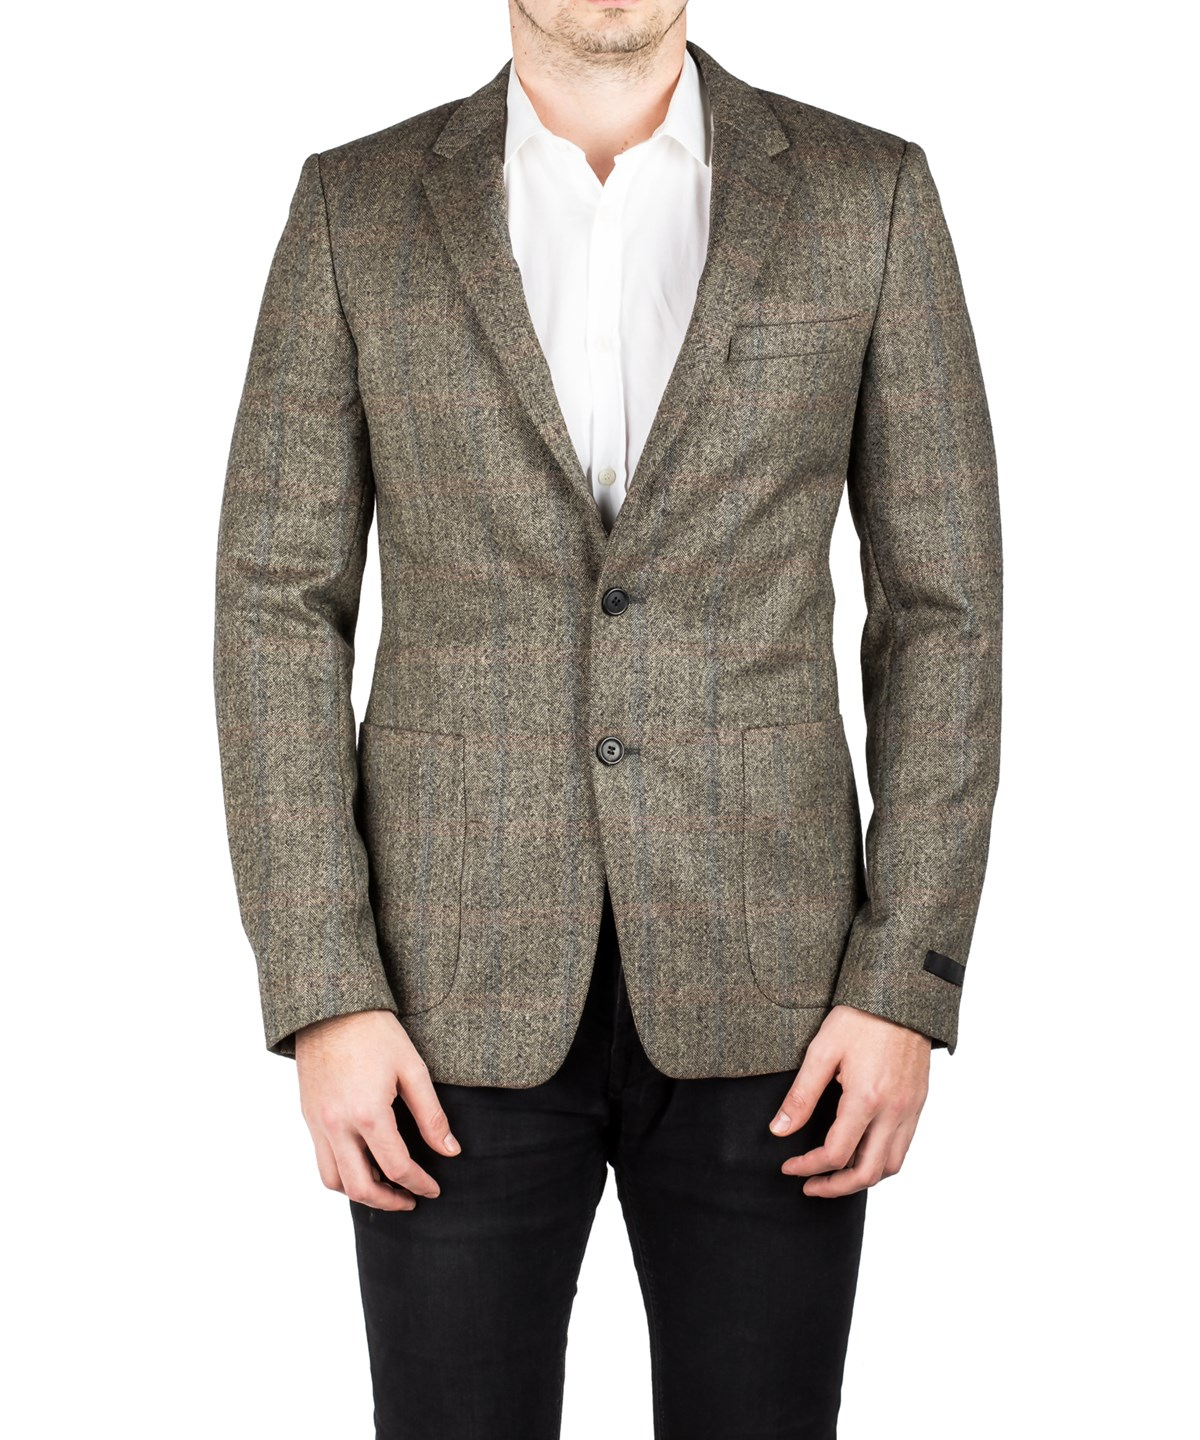 Prada Men's Notched Lapel Virgin Wool Sport Jacket Coat Blazer Plaid Stone Grey In Brown